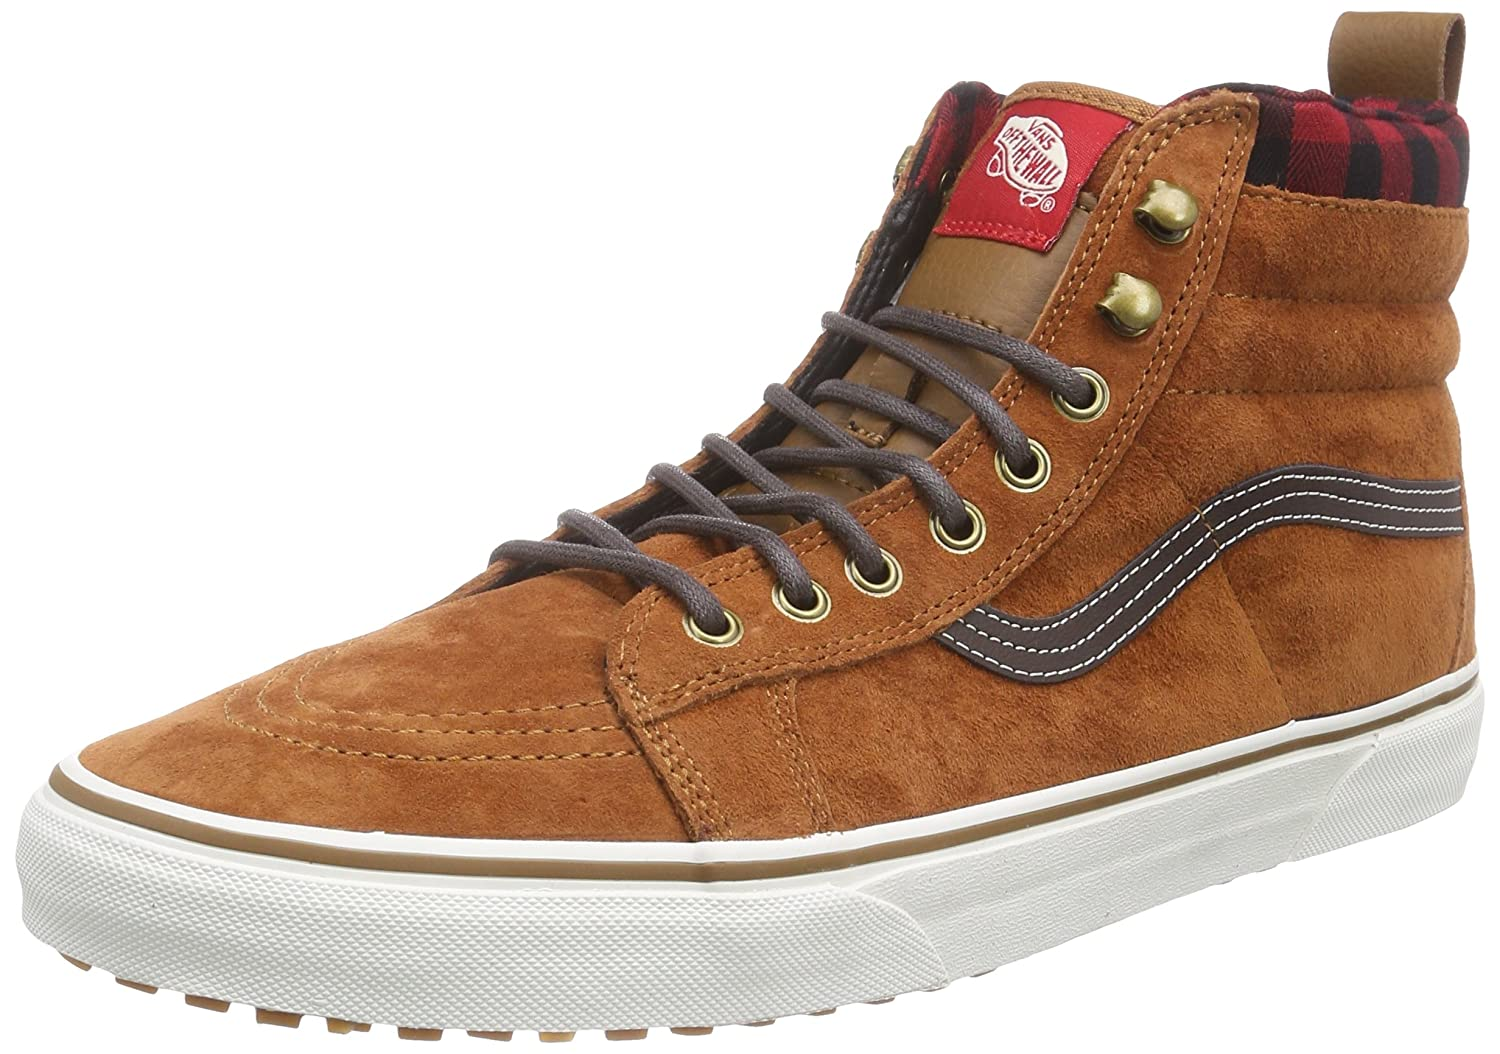 Vans Sk8-Hi Unisex Casual High-Top Skate Shoes 987a12f5e